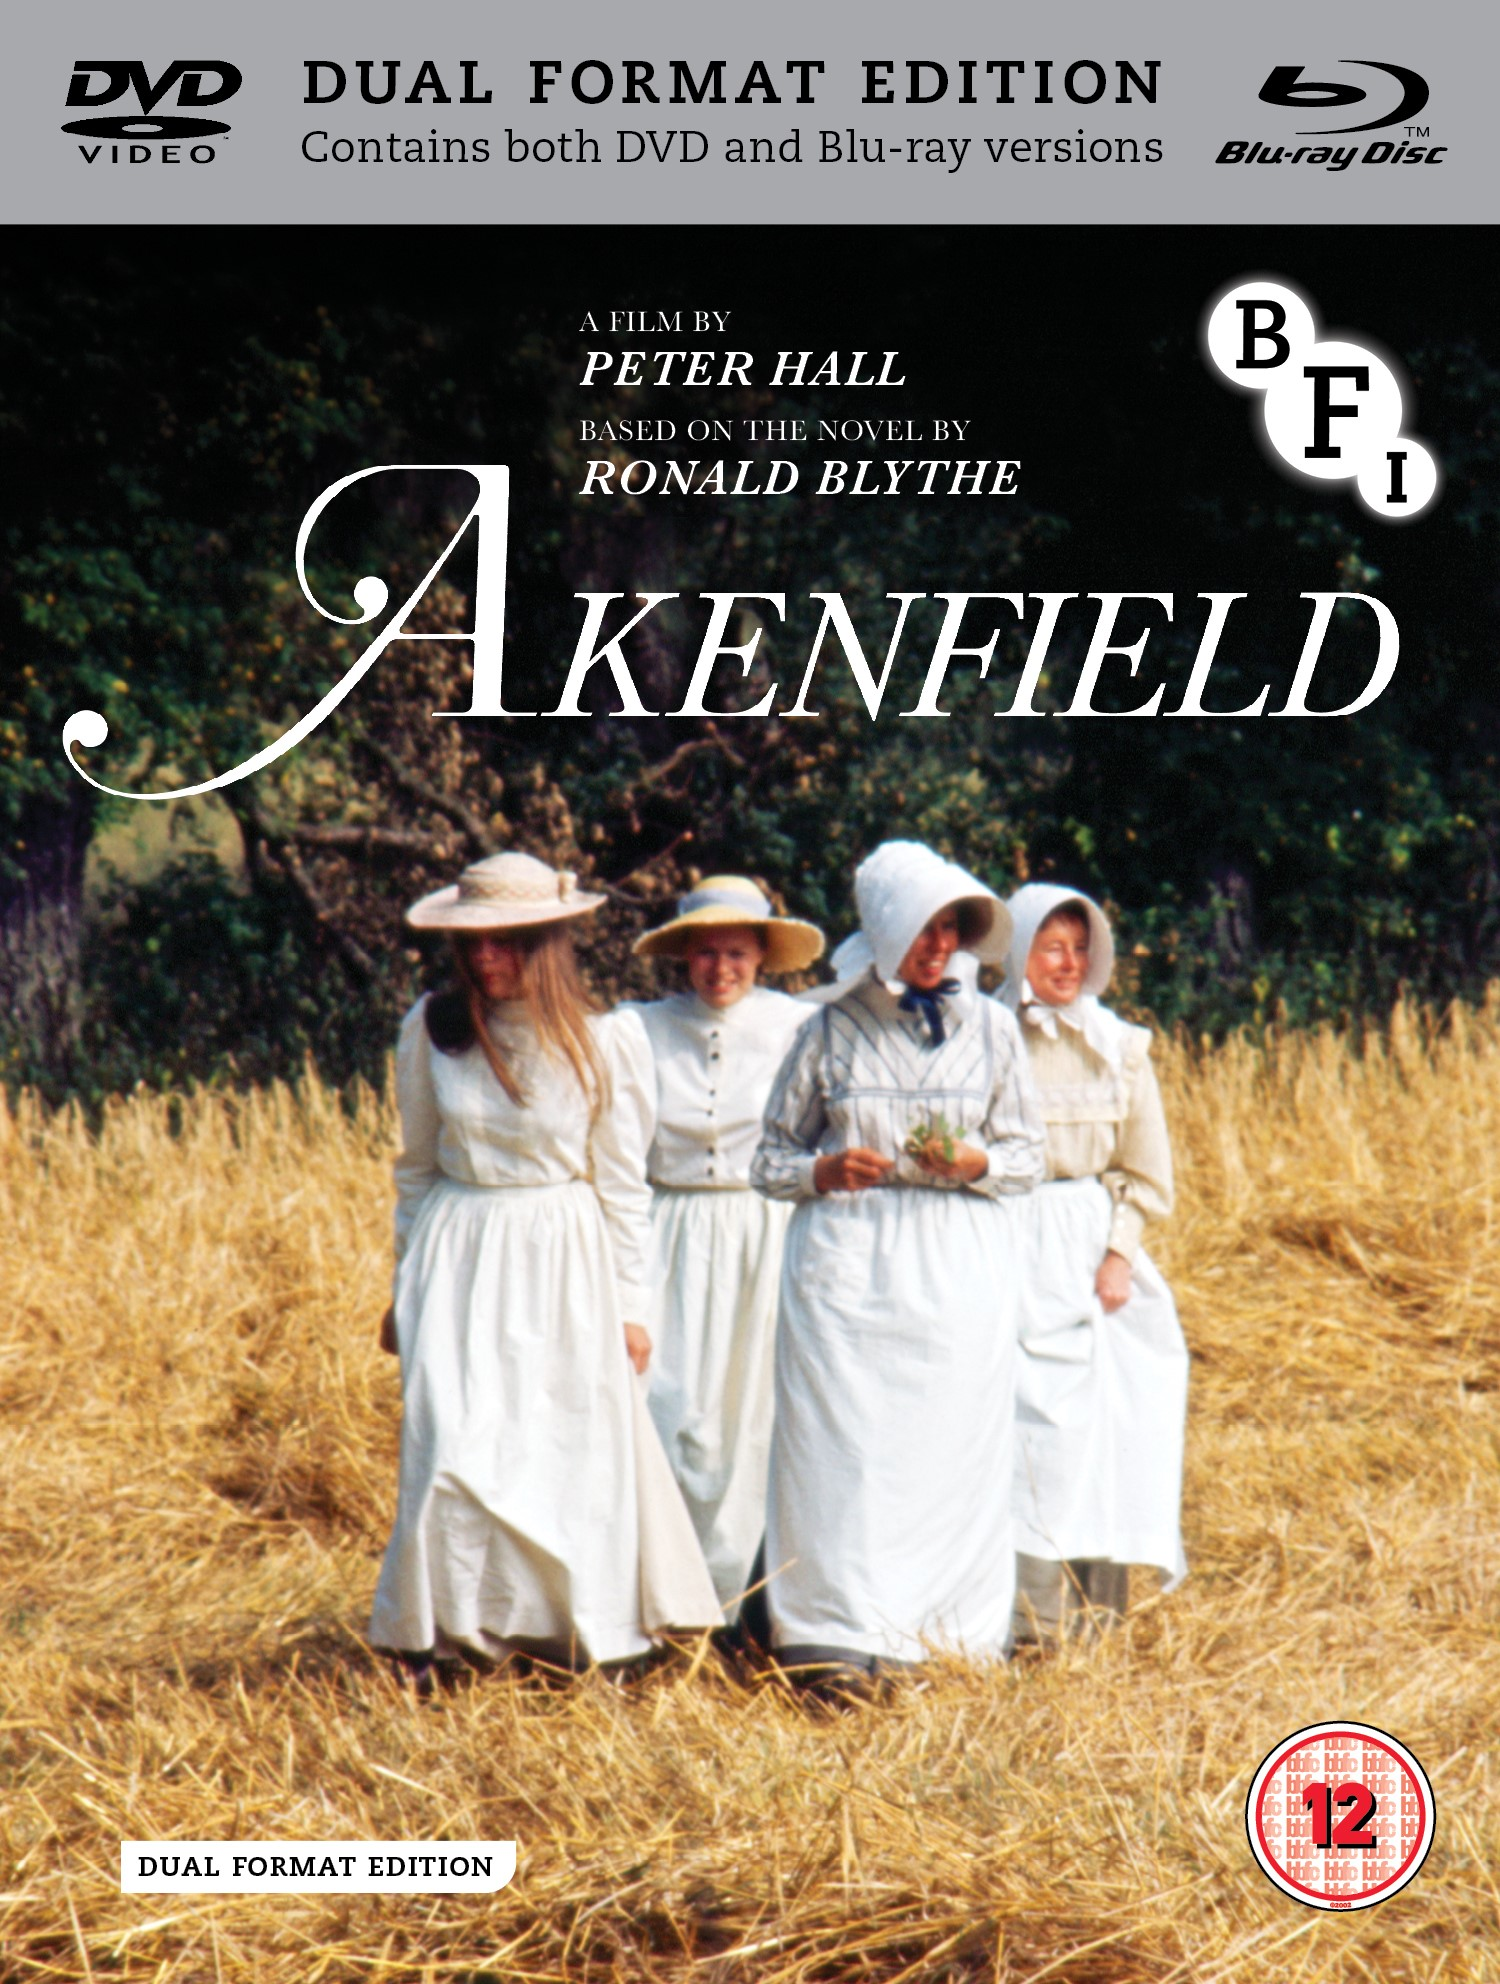 Buy Akenfield (Dual Edition)